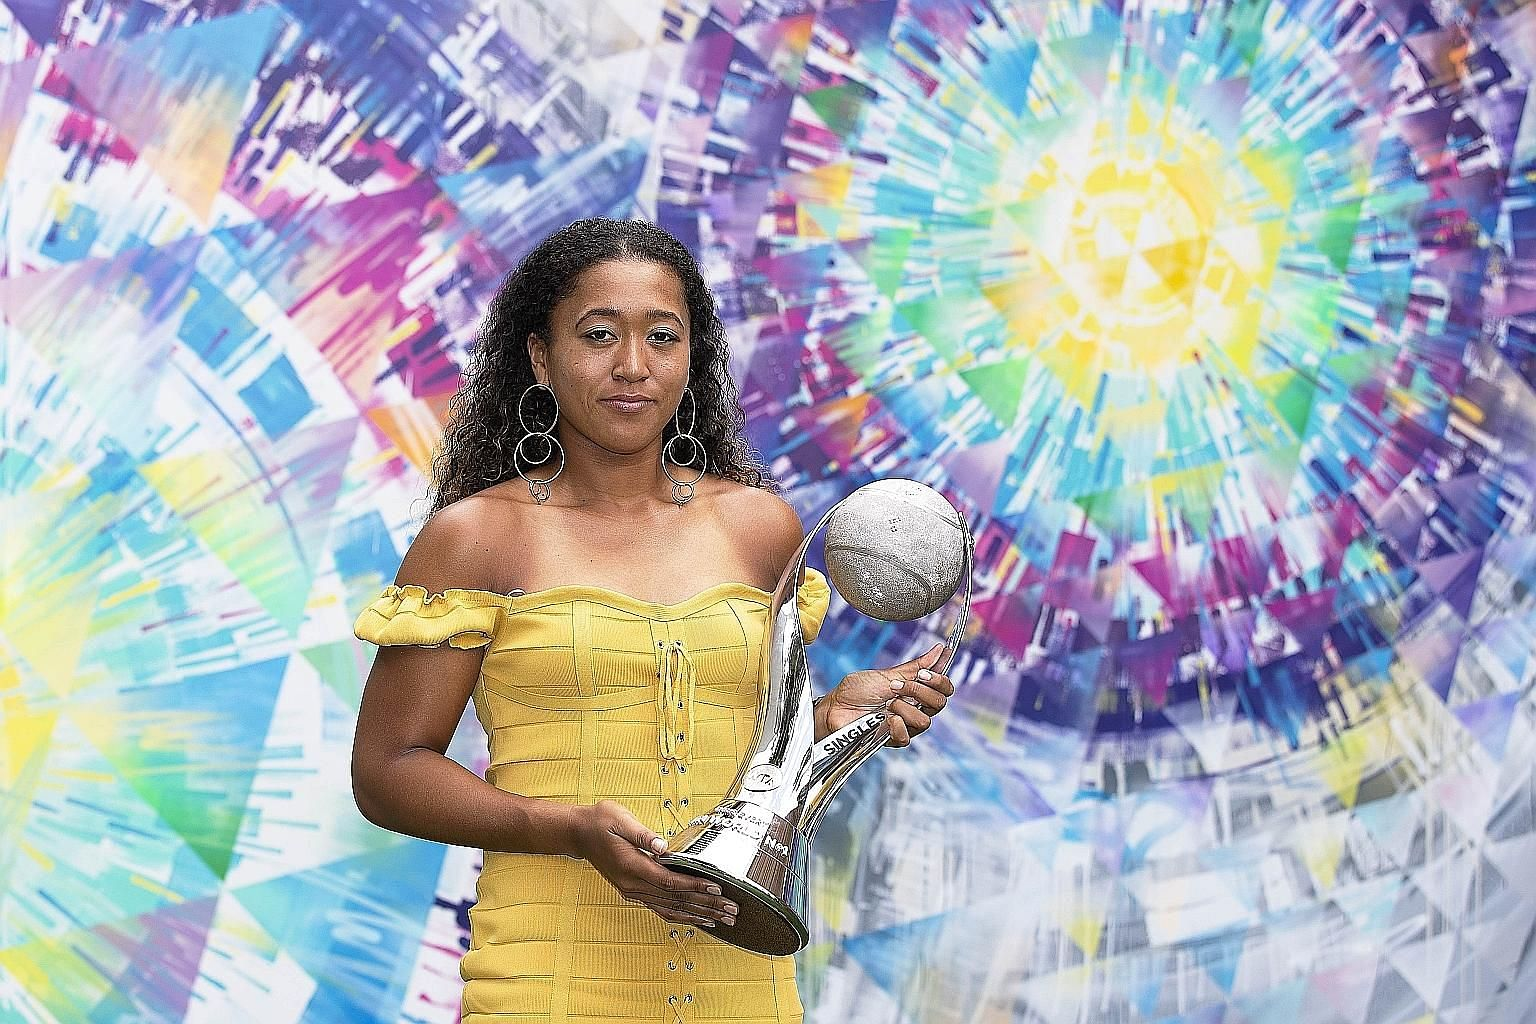 Japan's Naomi Osaka holding the WTA world No. 1 trophy during an event at the Miami Open on Wednesday.